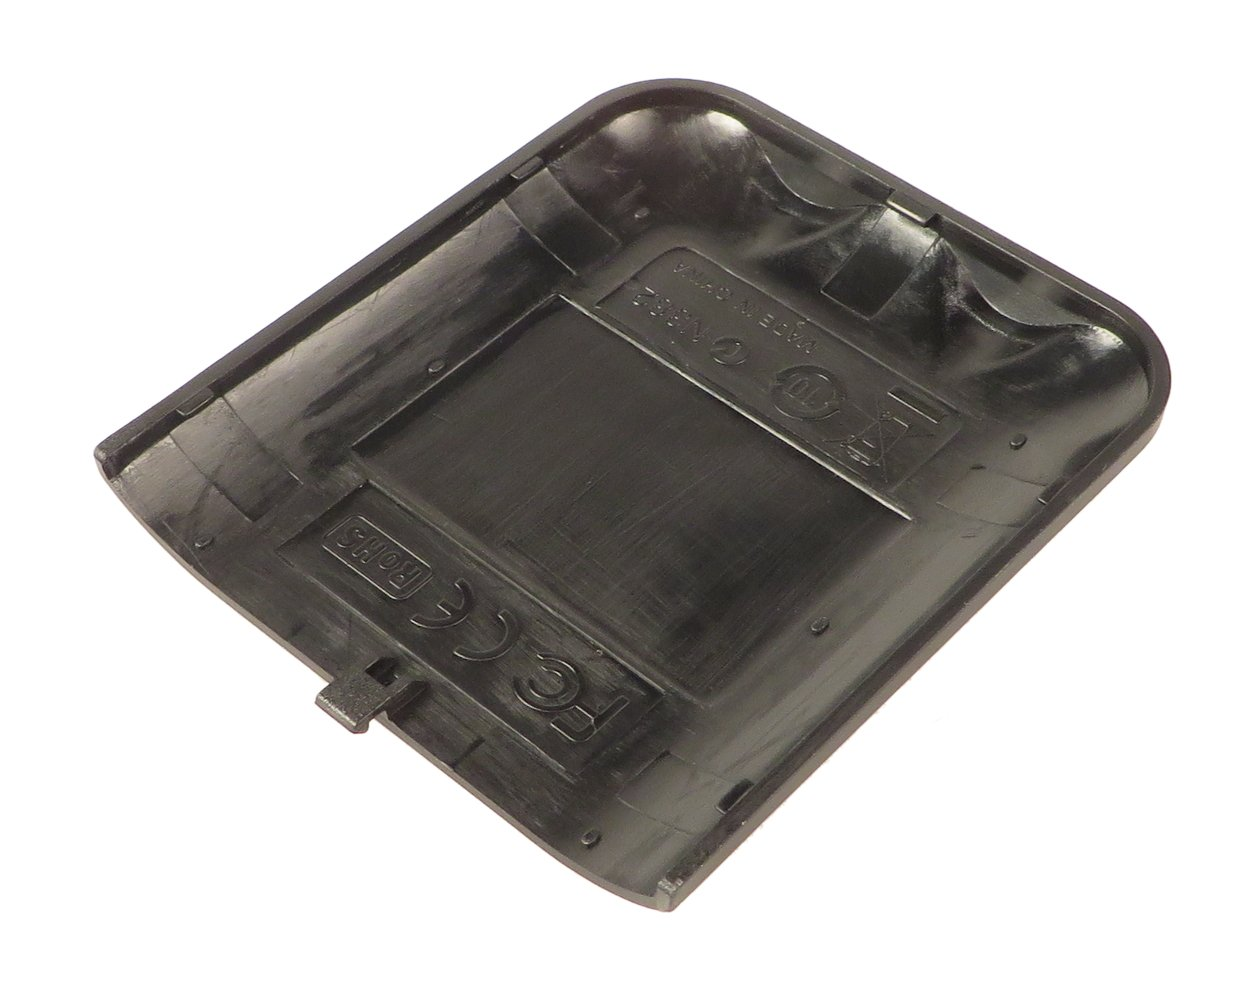 Battery Cover for DR-05